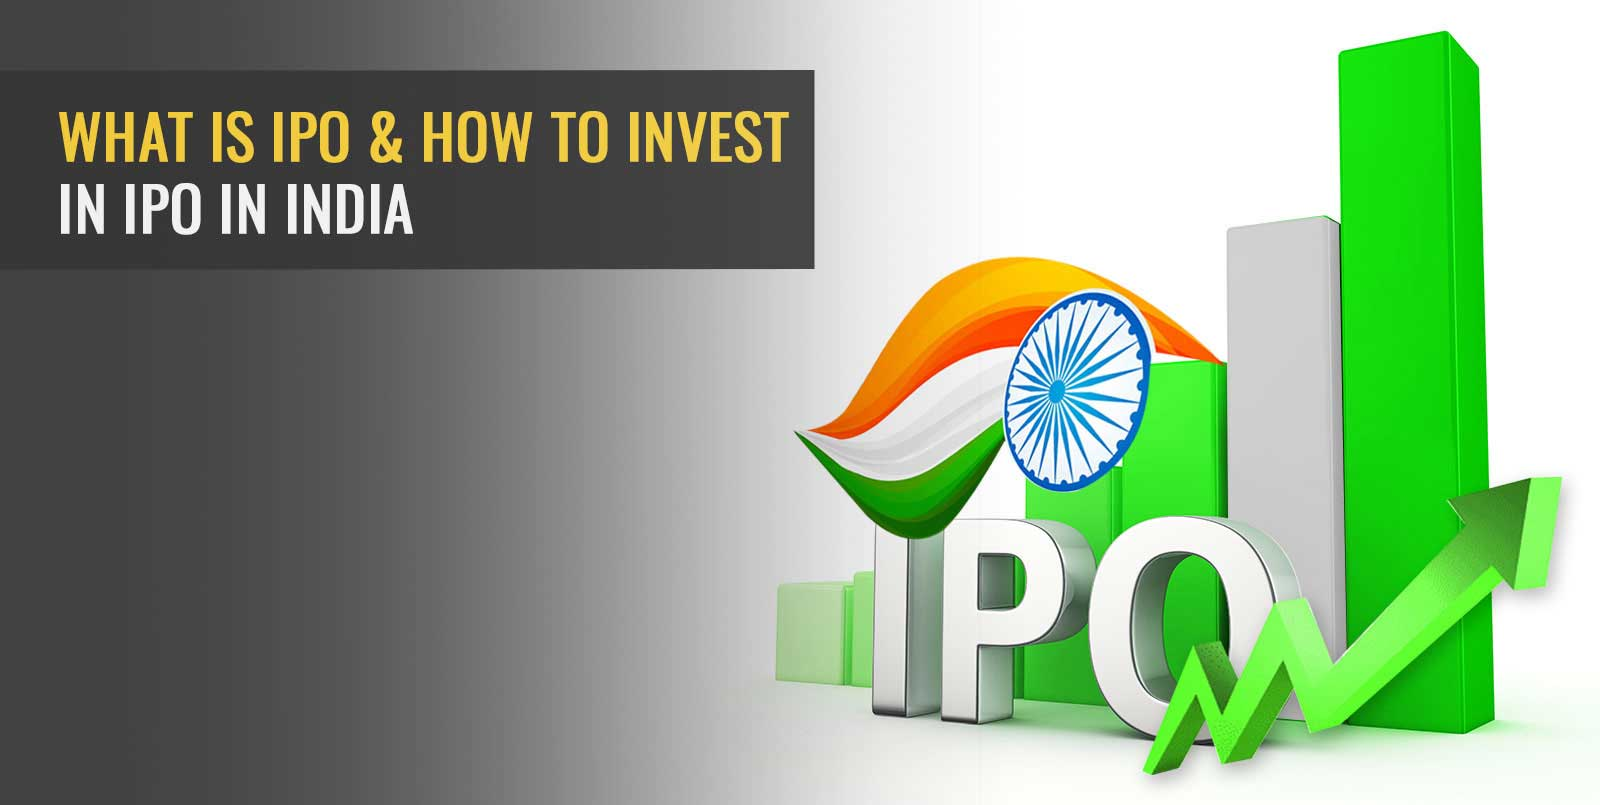 What is IPO & How to Invest in IPO in India